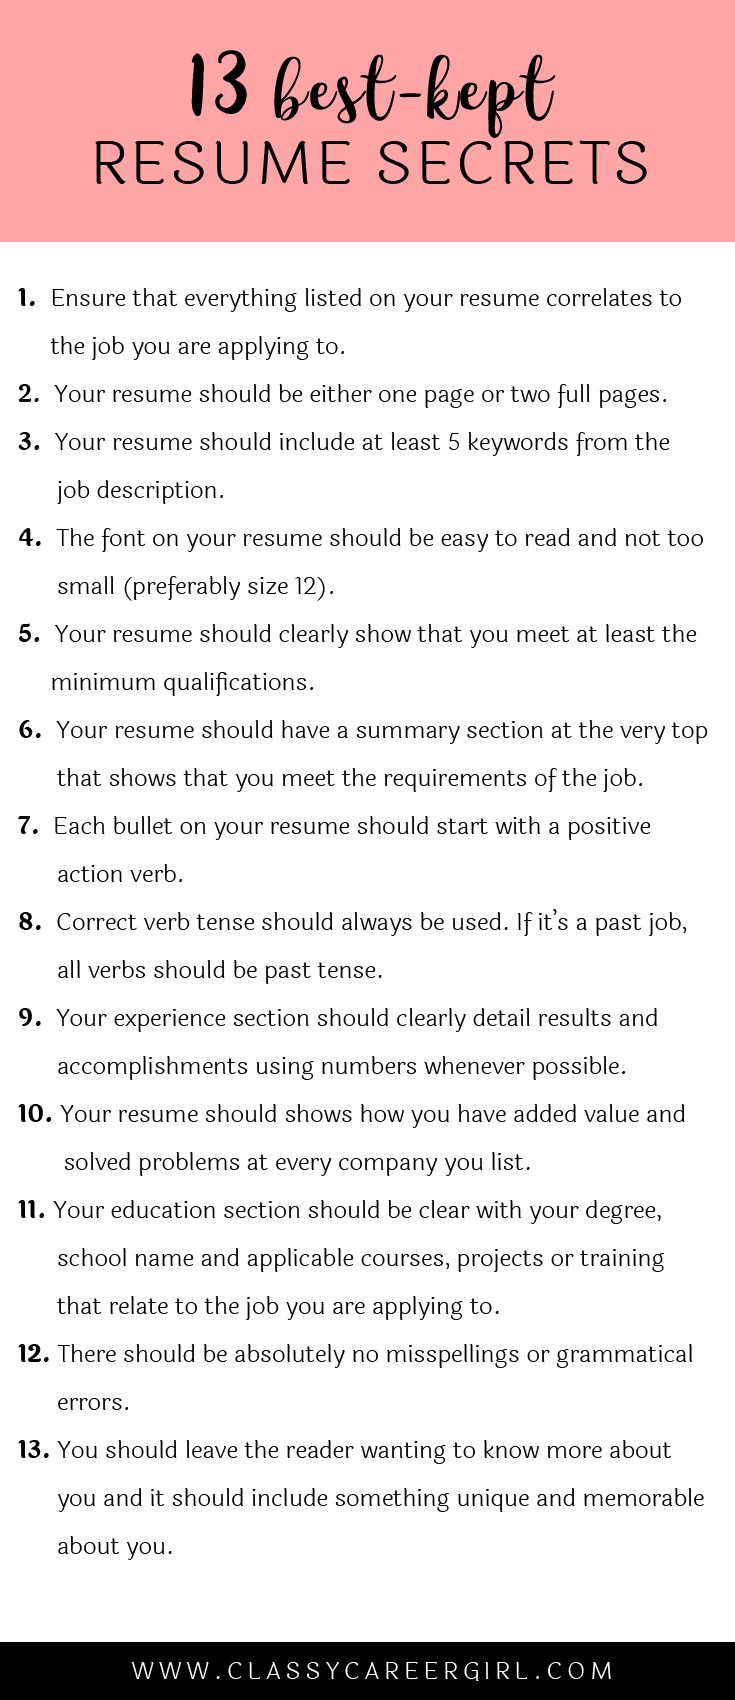 Picnictoimpeachus  Fascinating  Ideas About Resume On Pinterest  Cv Format Resume Cv And  With Luxury Some Hiring Managers Will Toss Your Resume Out If You Dont Know These  With Cute How To Post A Resume Online Also How To Write A General Resume In Addition Font On Resume And Hair Stylist Resume Example As Well As Nursing Resume Objective Examples Additionally Resume Template Education From Pinterestcom With Picnictoimpeachus  Luxury  Ideas About Resume On Pinterest  Cv Format Resume Cv And  With Cute Some Hiring Managers Will Toss Your Resume Out If You Dont Know These  And Fascinating How To Post A Resume Online Also How To Write A General Resume In Addition Font On Resume From Pinterestcom